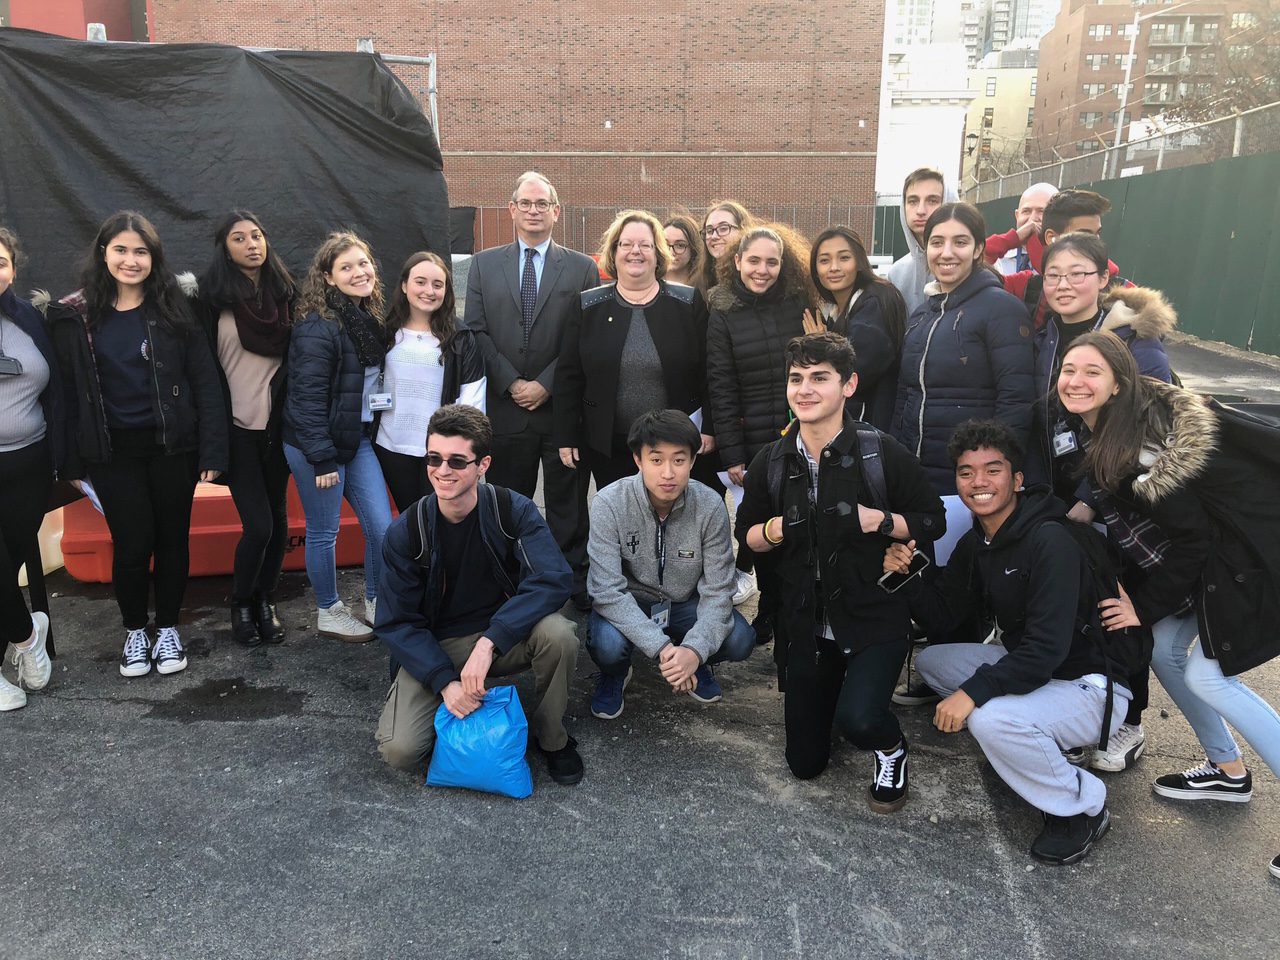 Assemblywoman Catherine Nolan, Principal William Bassell and several students from the school.